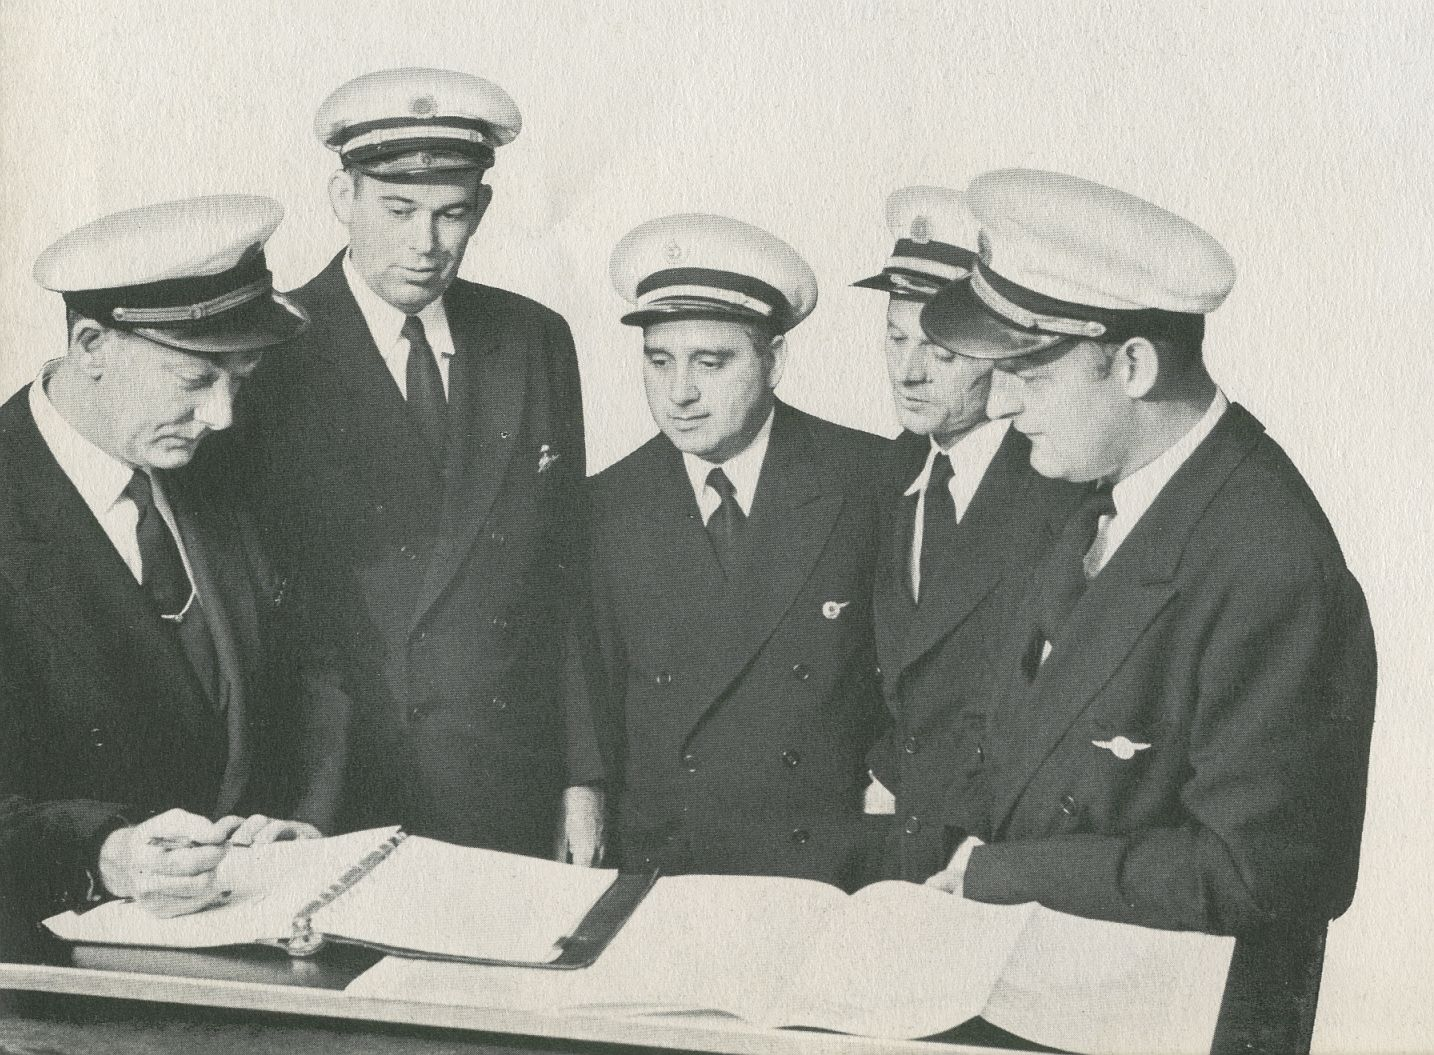 1956 Pan Am pilots gather before a flight to discuss weather and the route plan.  Pilot Victor Grubbs is second from left.